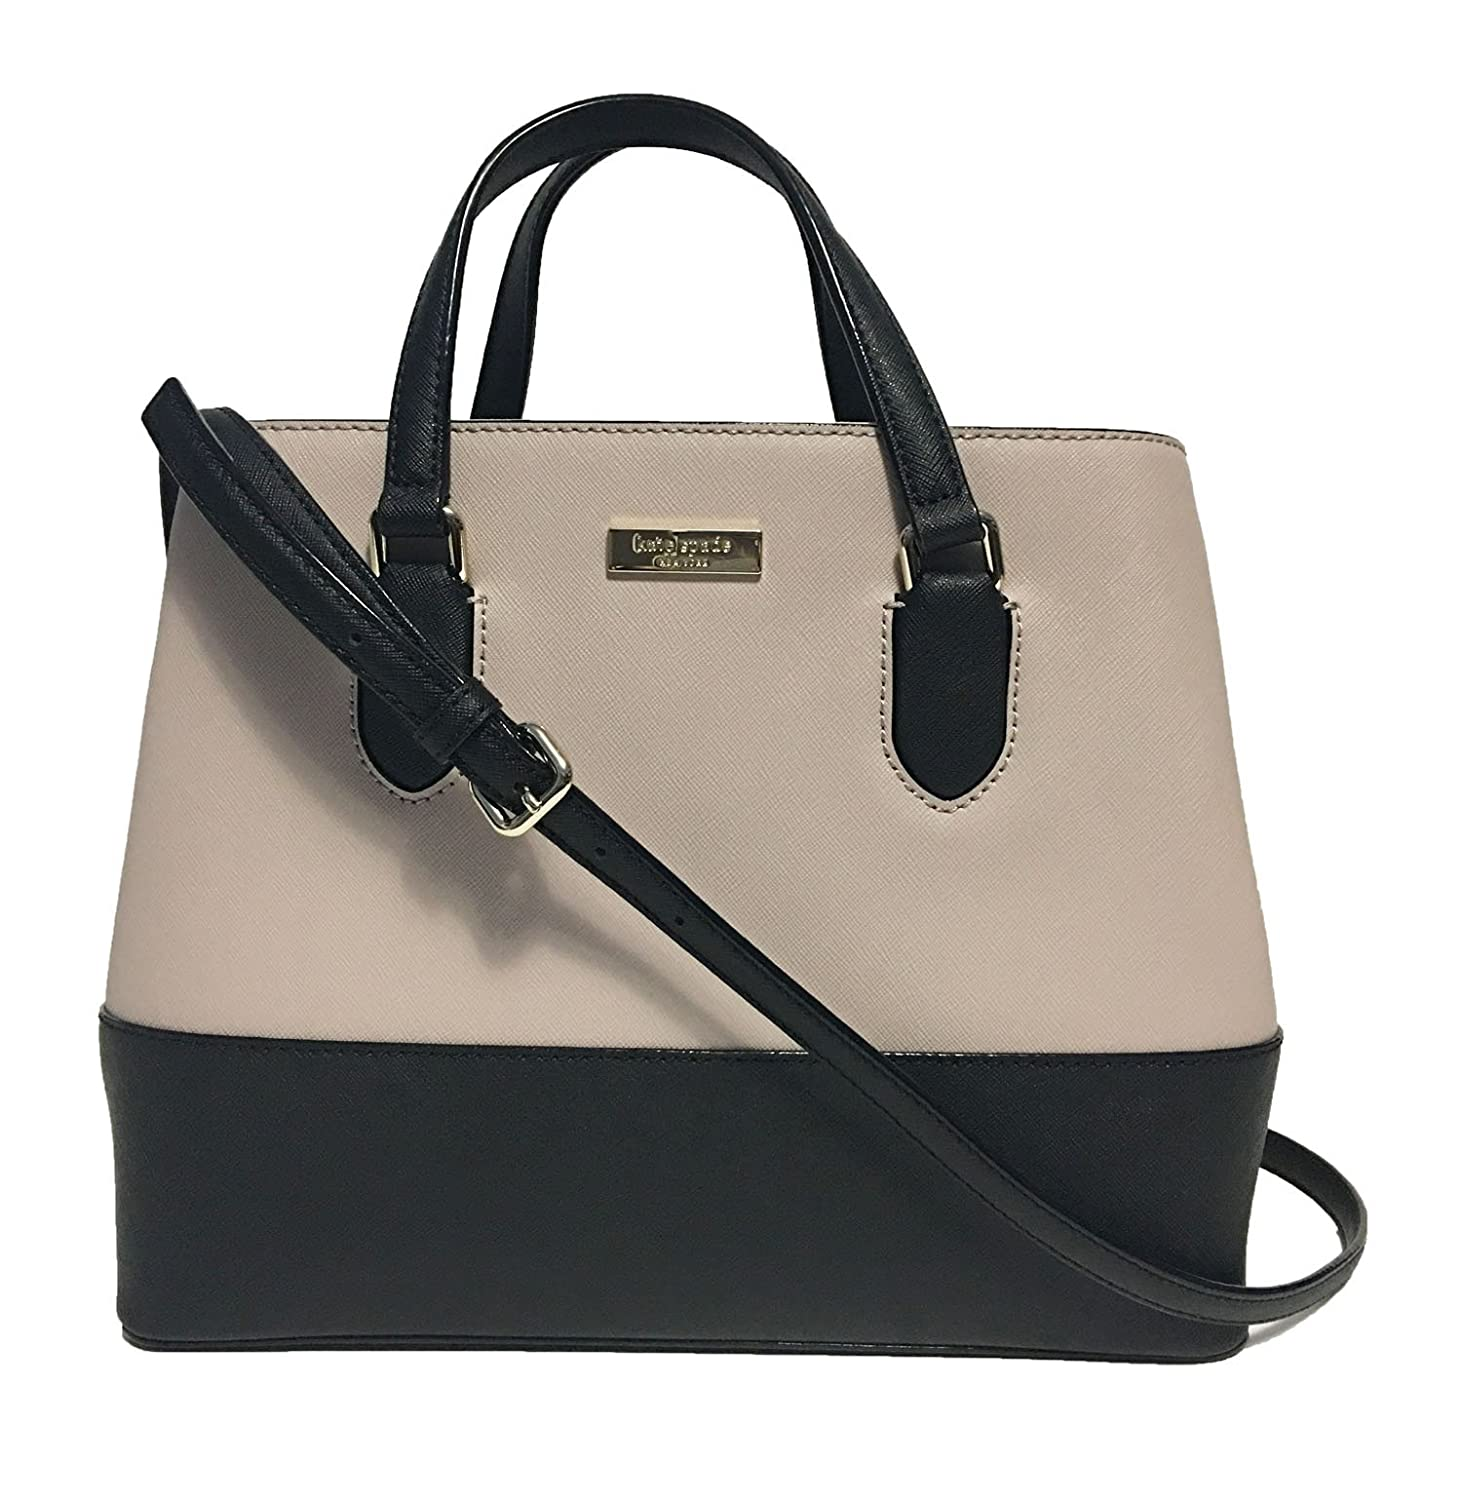 3d2623a185bf Amazon.com  Kate Spade New York Laurel Way Evangelie Saffiano Leather  Shoulder Bag Handbag